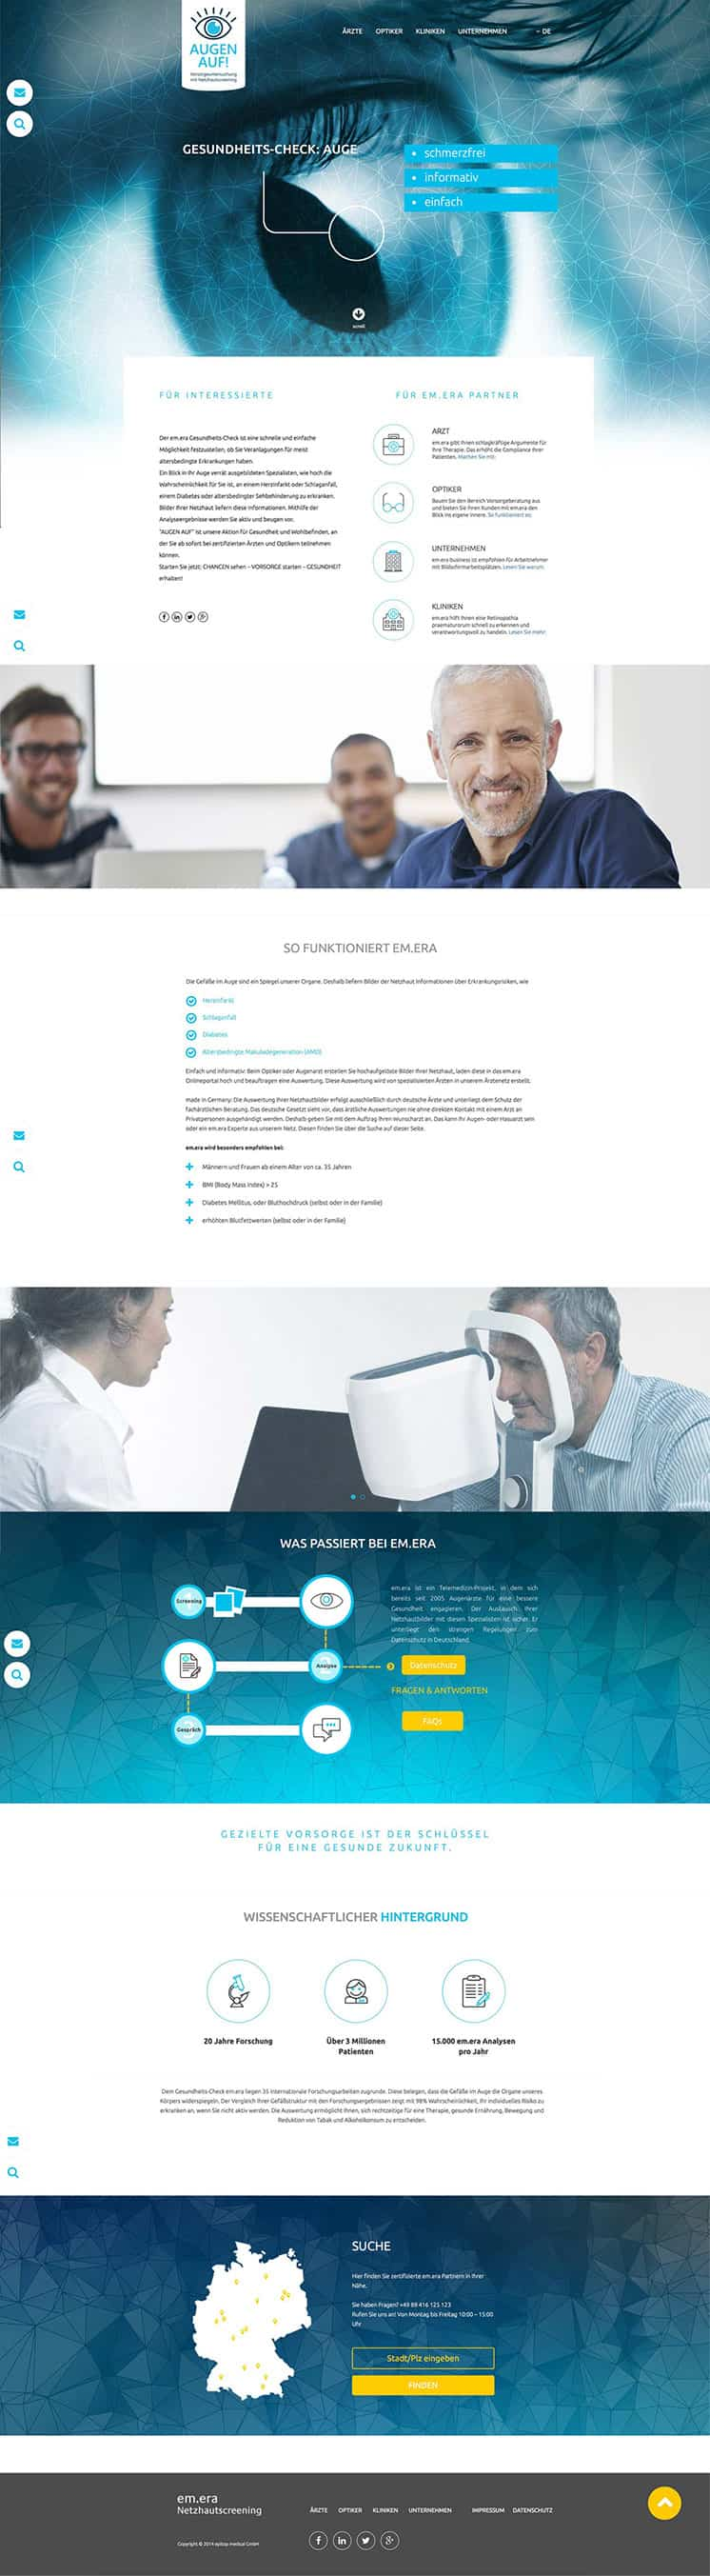 Webdesign und Coding - One Pager epitop medical GmbH